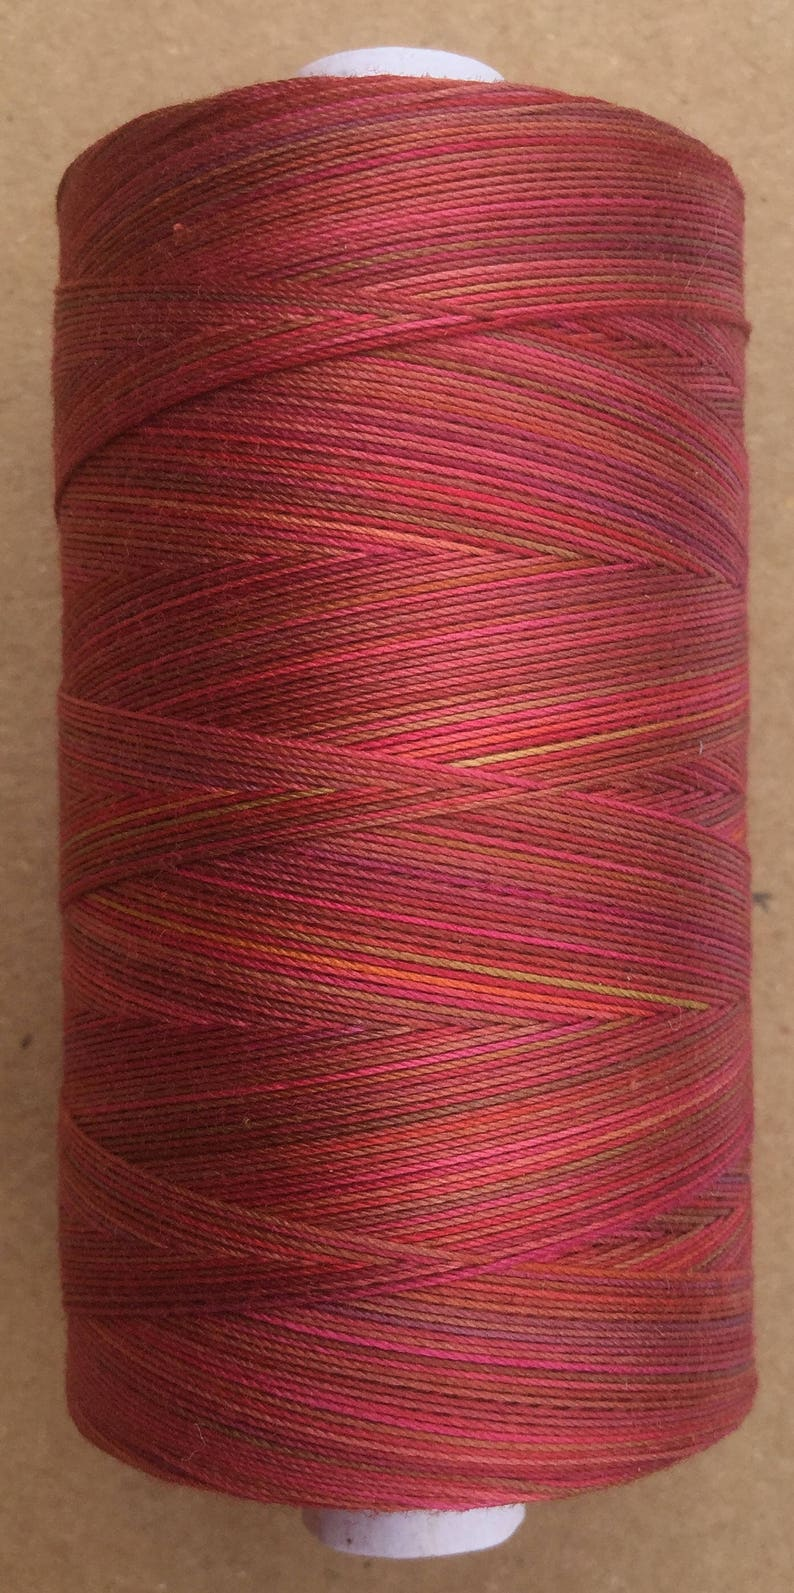 Hand Dyed Cotton Machine Quilting Thread Colour No.02 Antique Red 820yds Machine Embroidery Thread 750m Eygyptian Cotton 40 weight